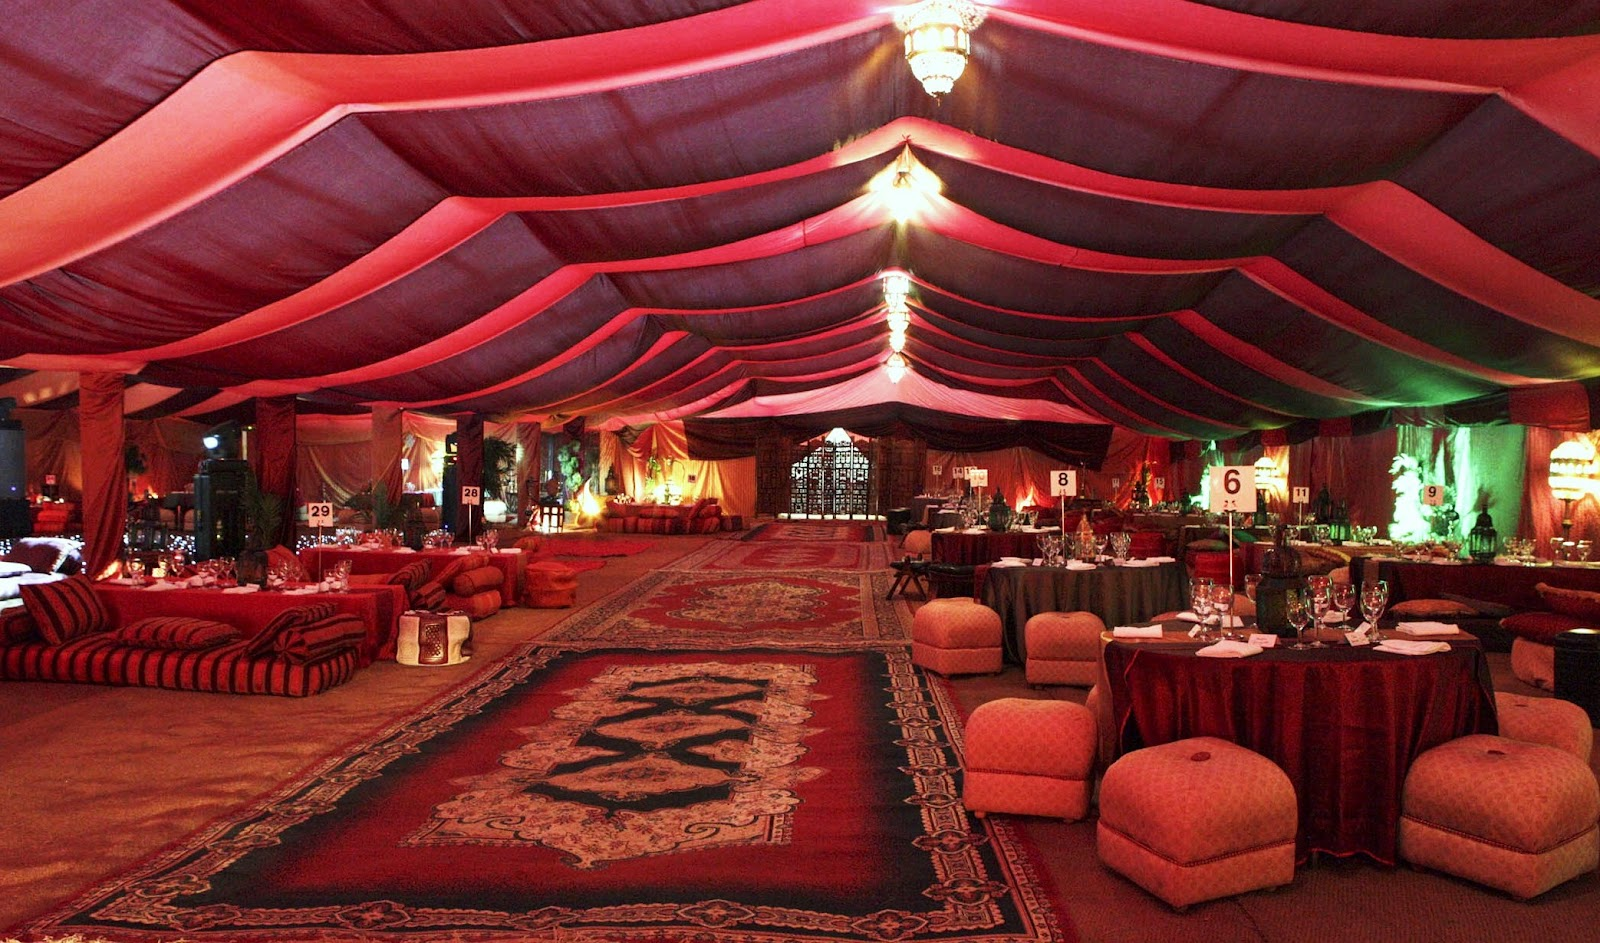 Wedding decor wedding tent decorating ideas wedding tent junglespirit Image collections